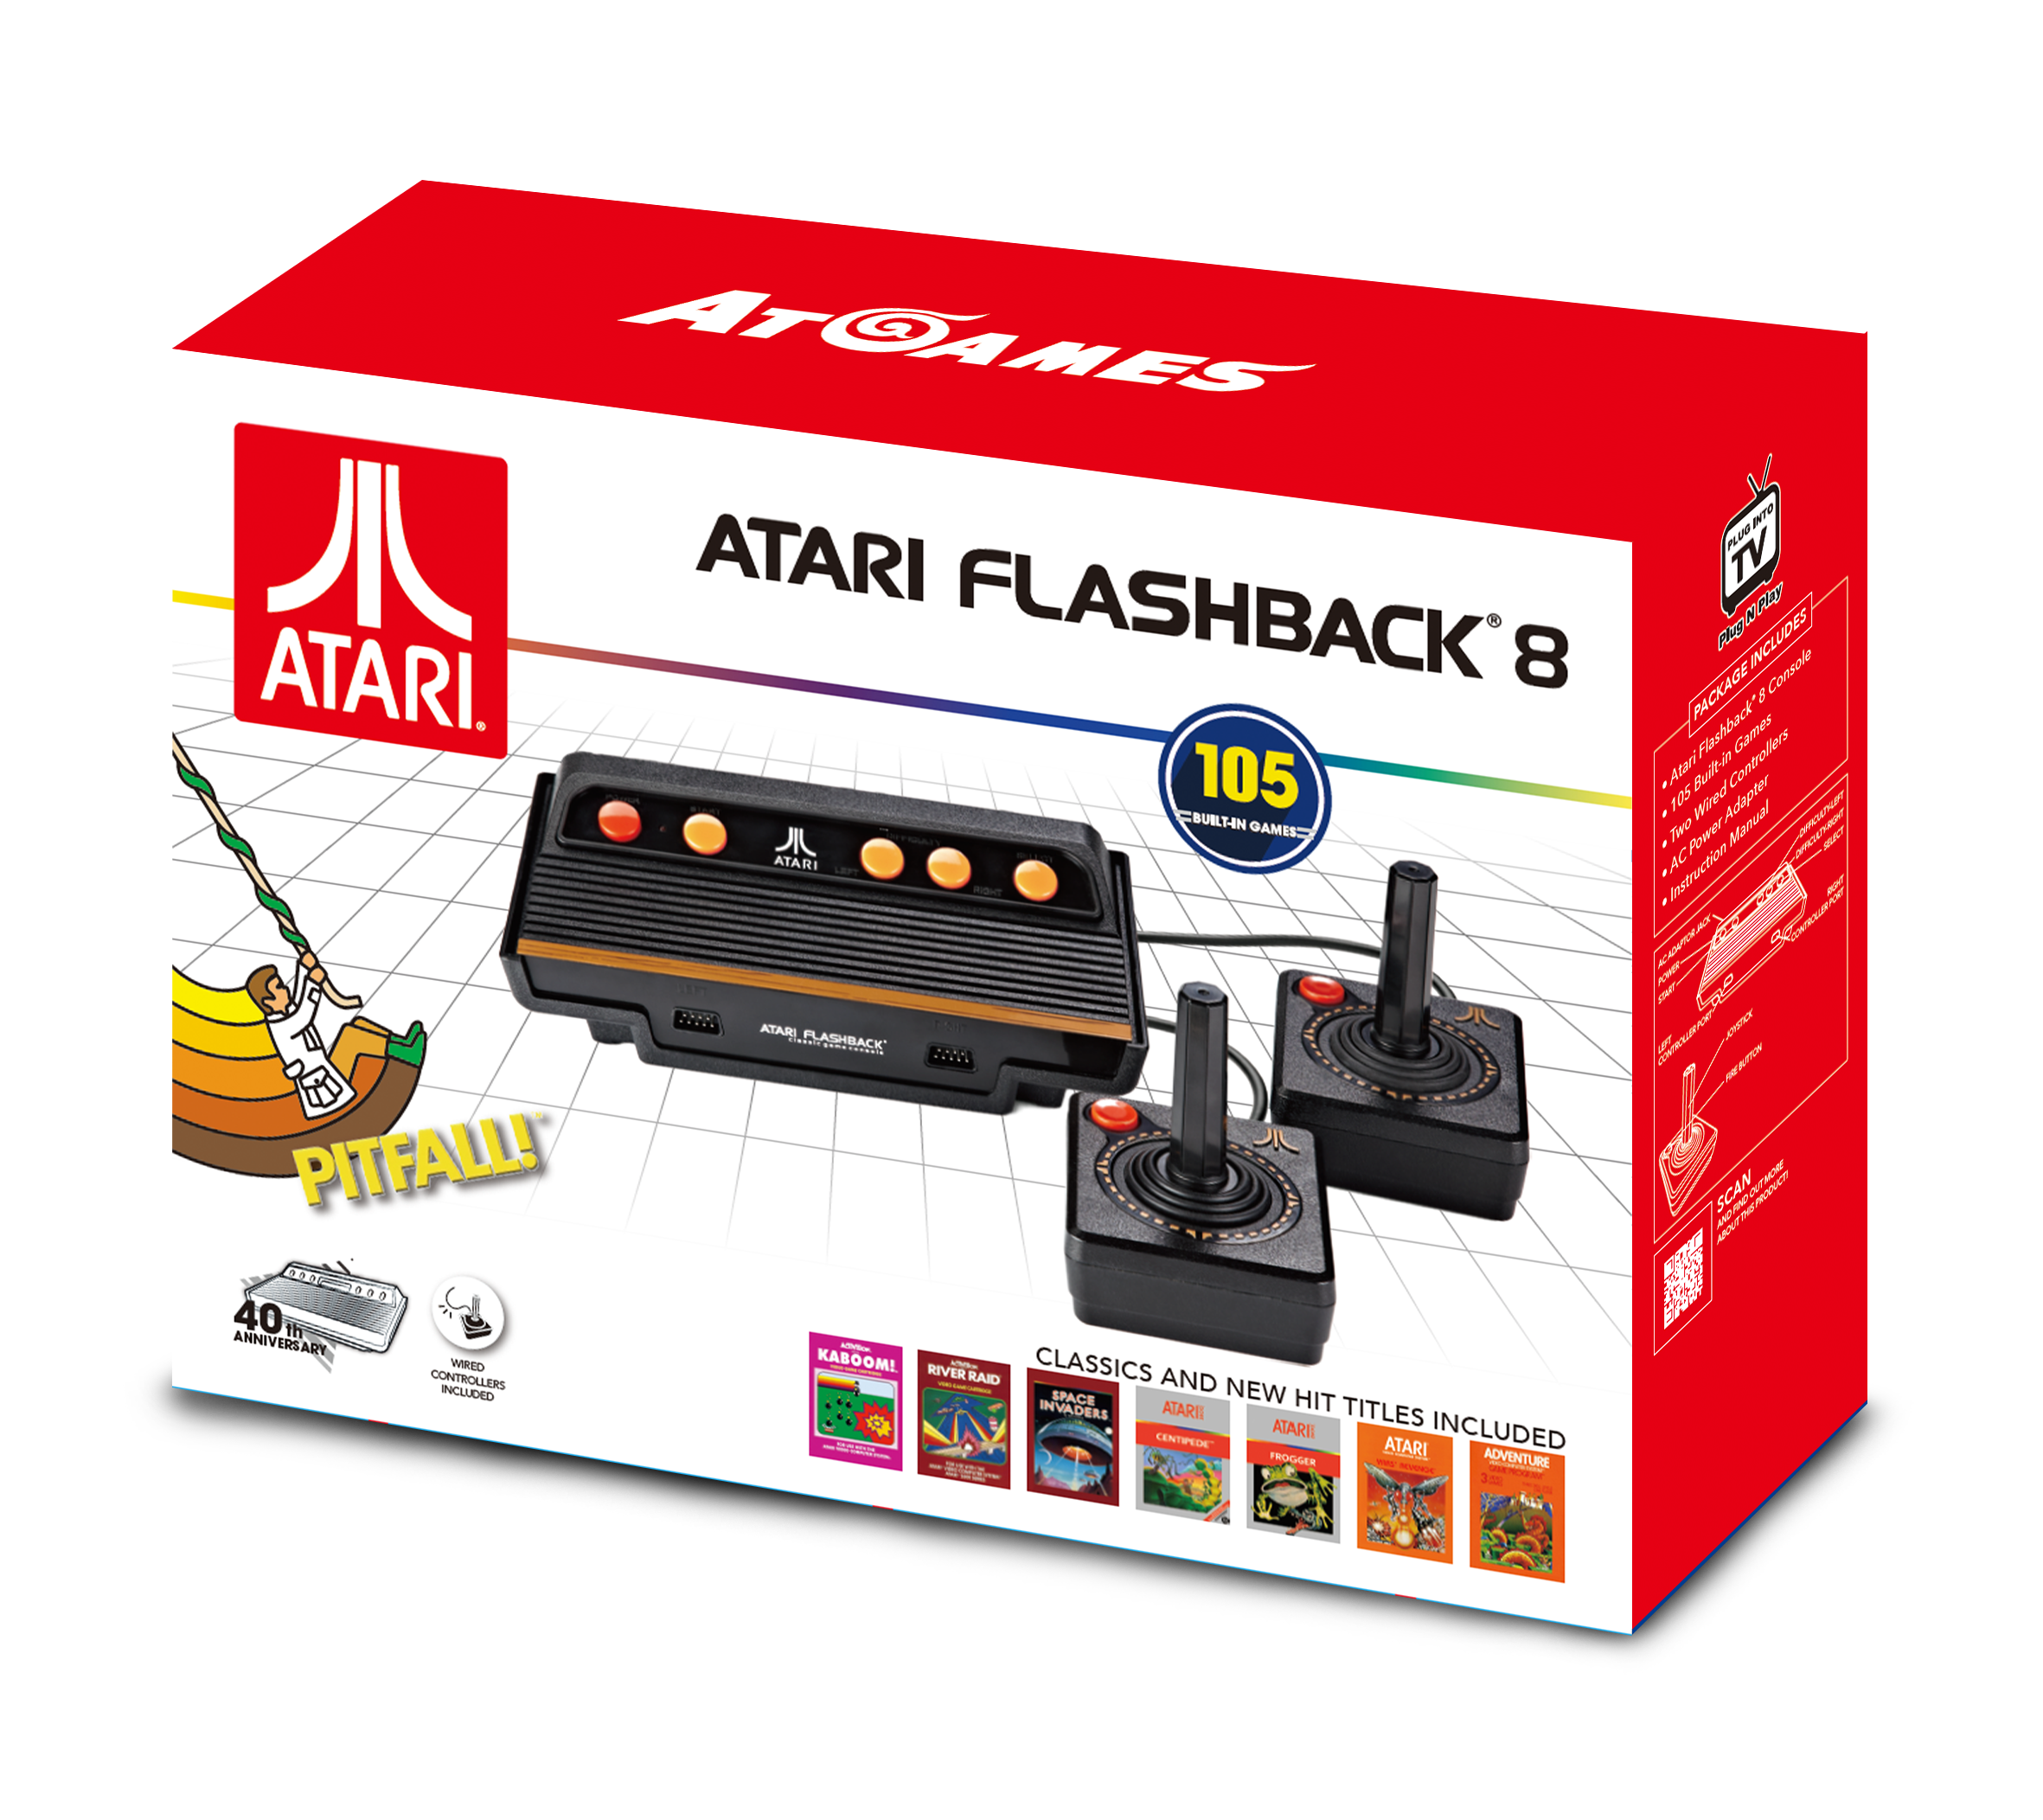 Atari flashback 8 classic game console 2017 the - Atari flashback classic game console game list ...